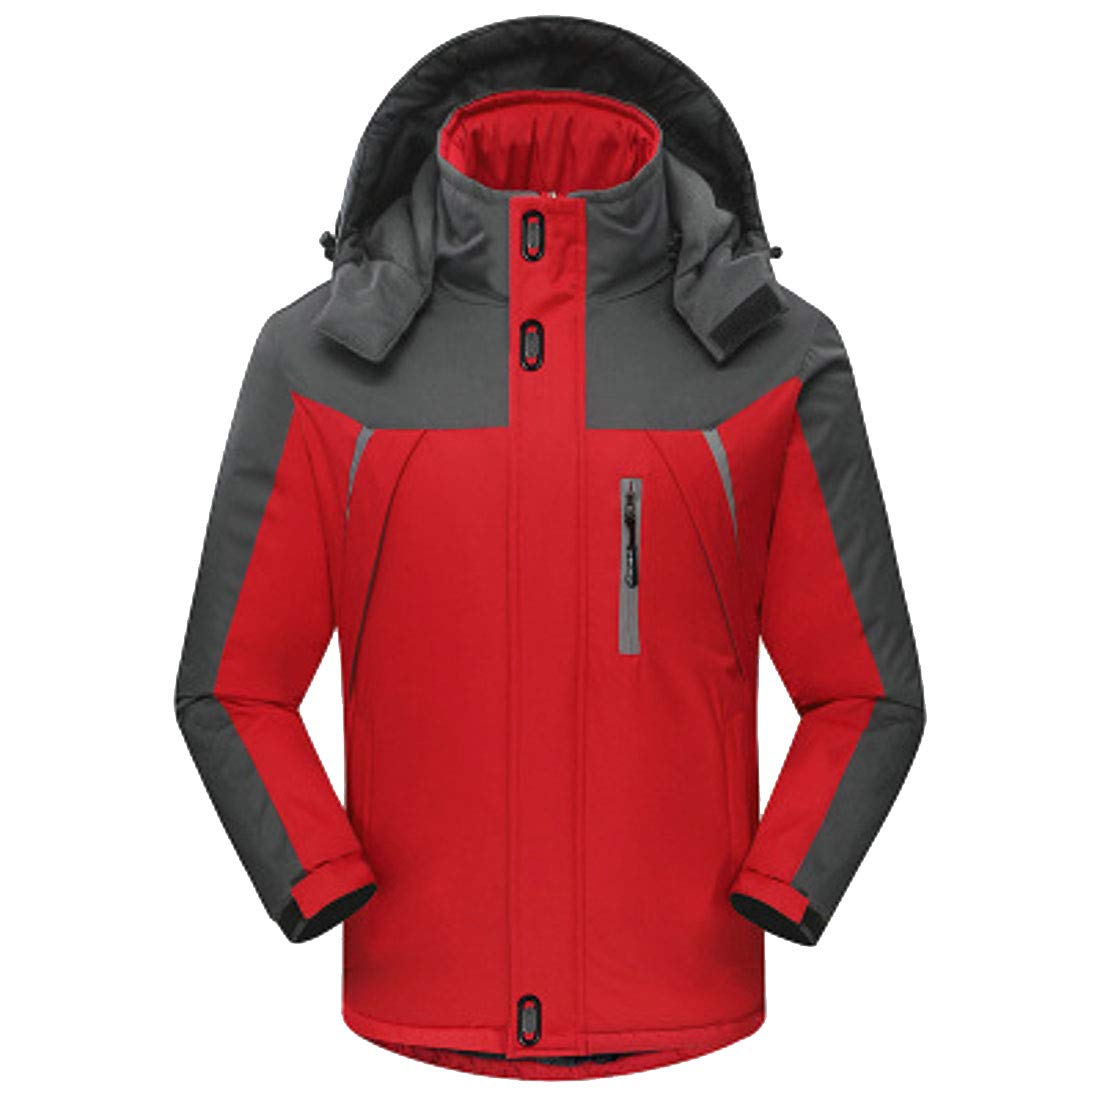 BOBOYU Mens Pizex Outdoor Plus Size Hooded Fleece Quilted Jacket Coat Outerwear